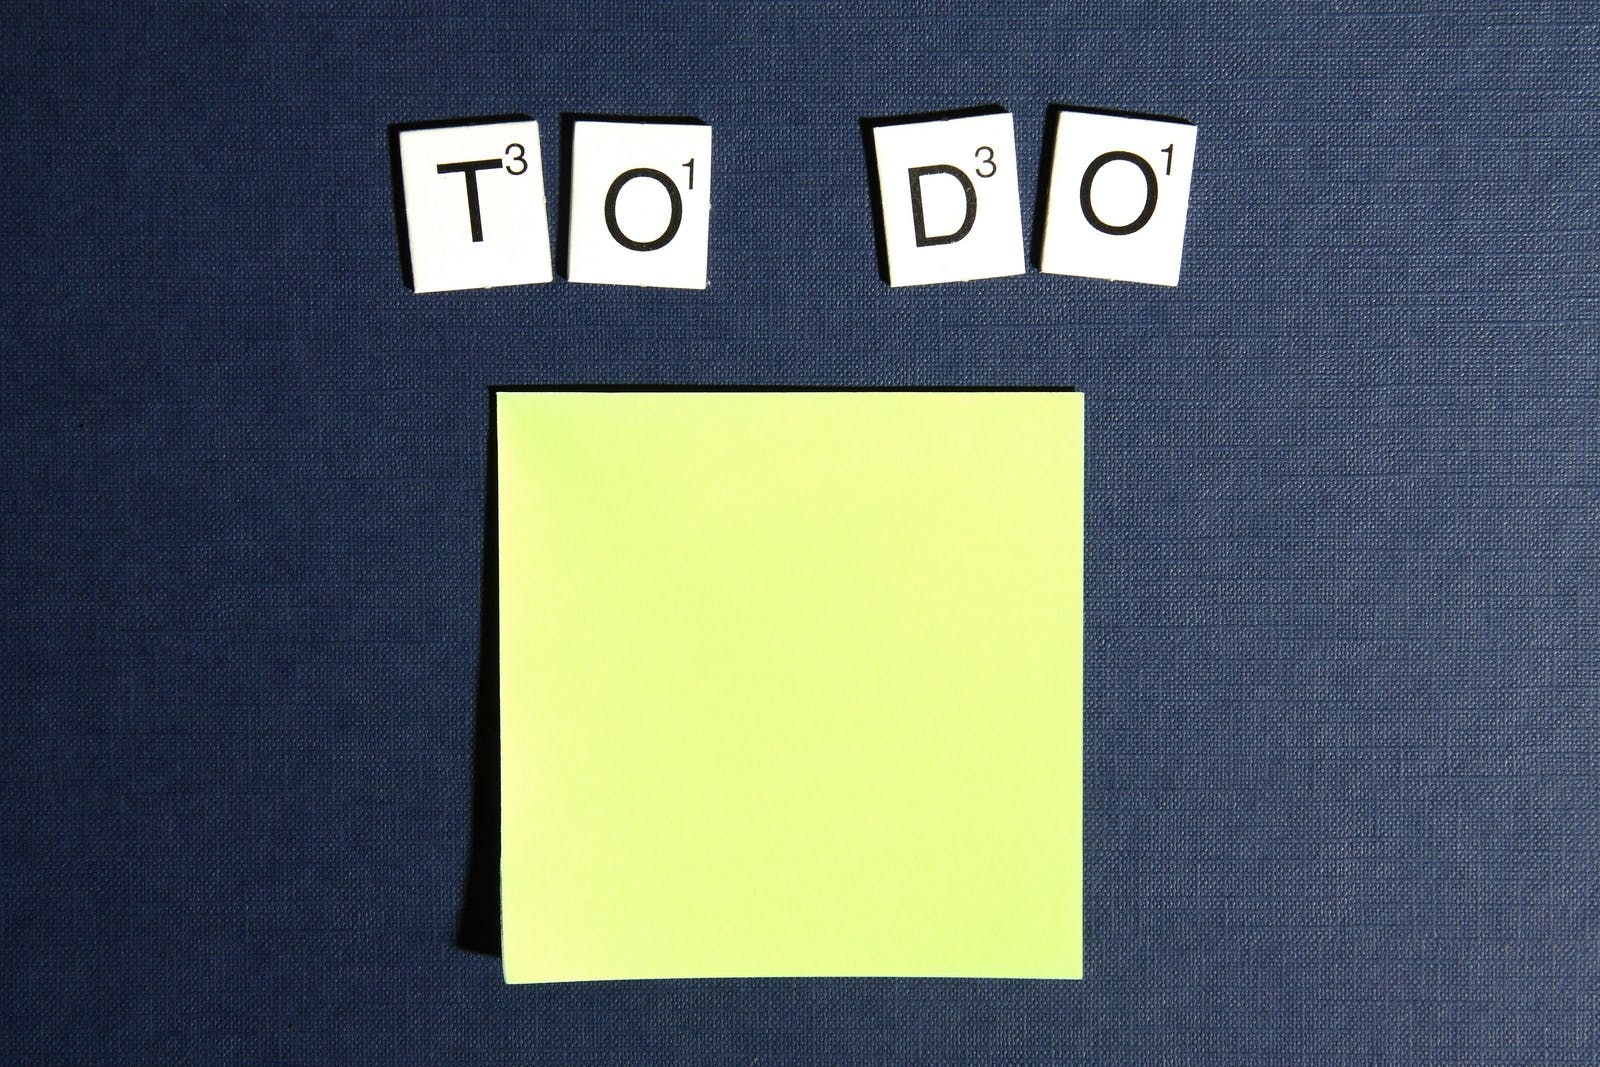 Free stock photo of postit, scrabble, to do, checklist